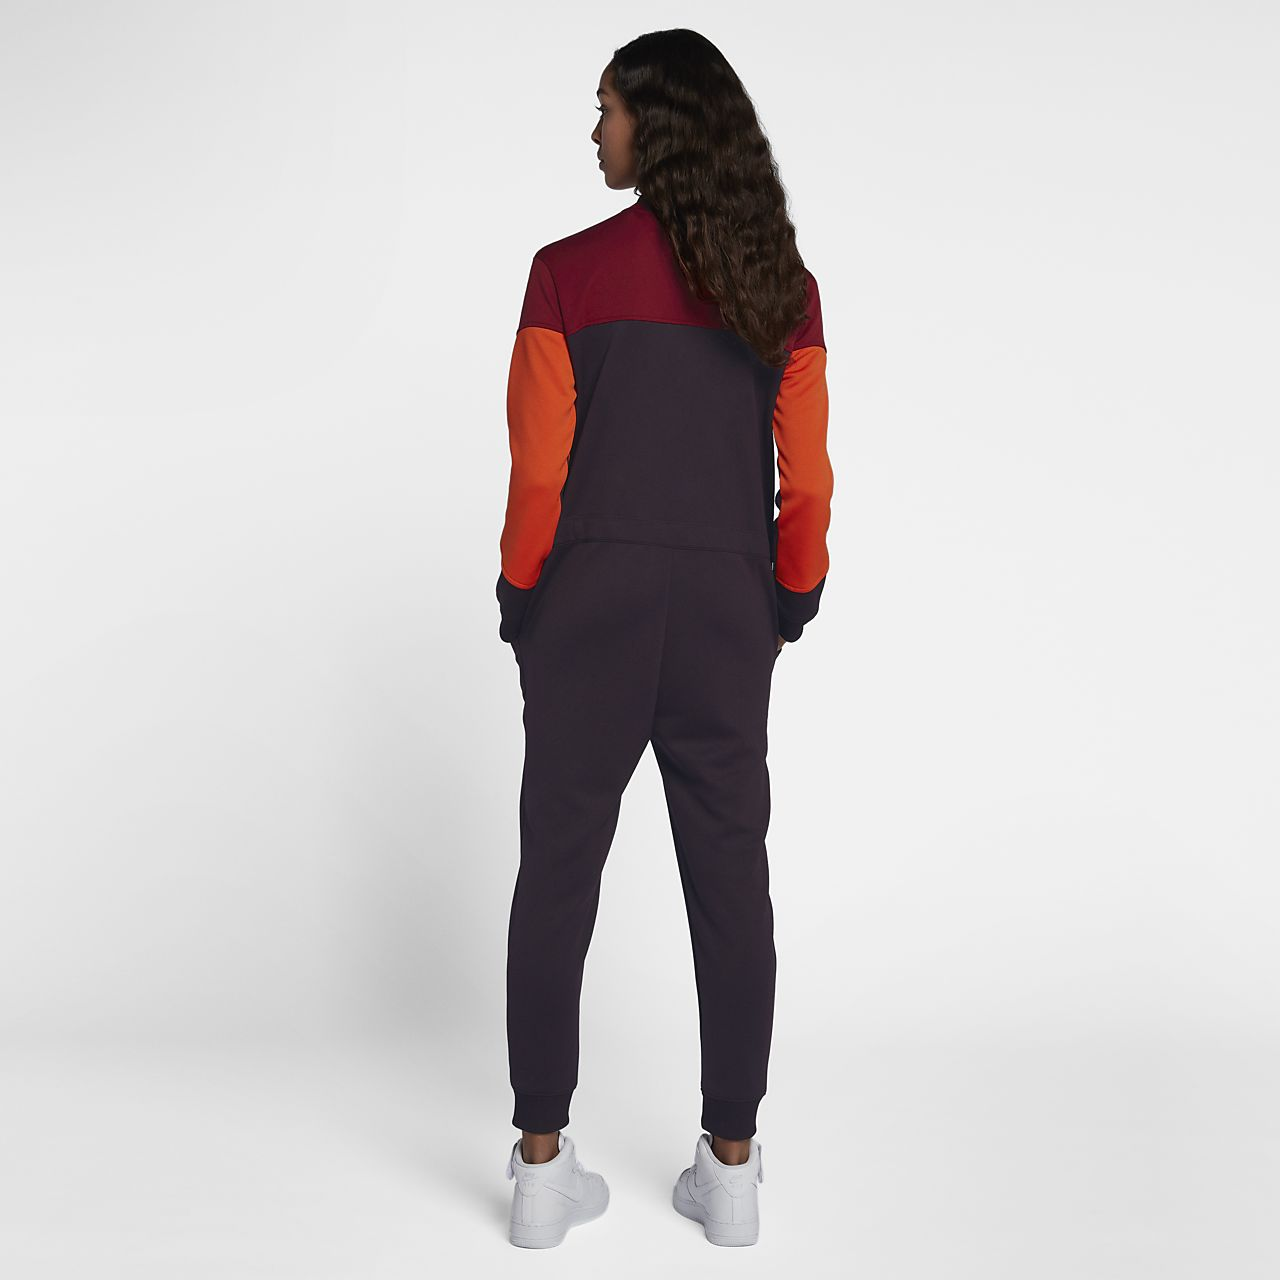 a734f44655af Nike Jumpsuit Related Keywords - Nike Jumpsuit Long Tail Keywords  KeywordsKing